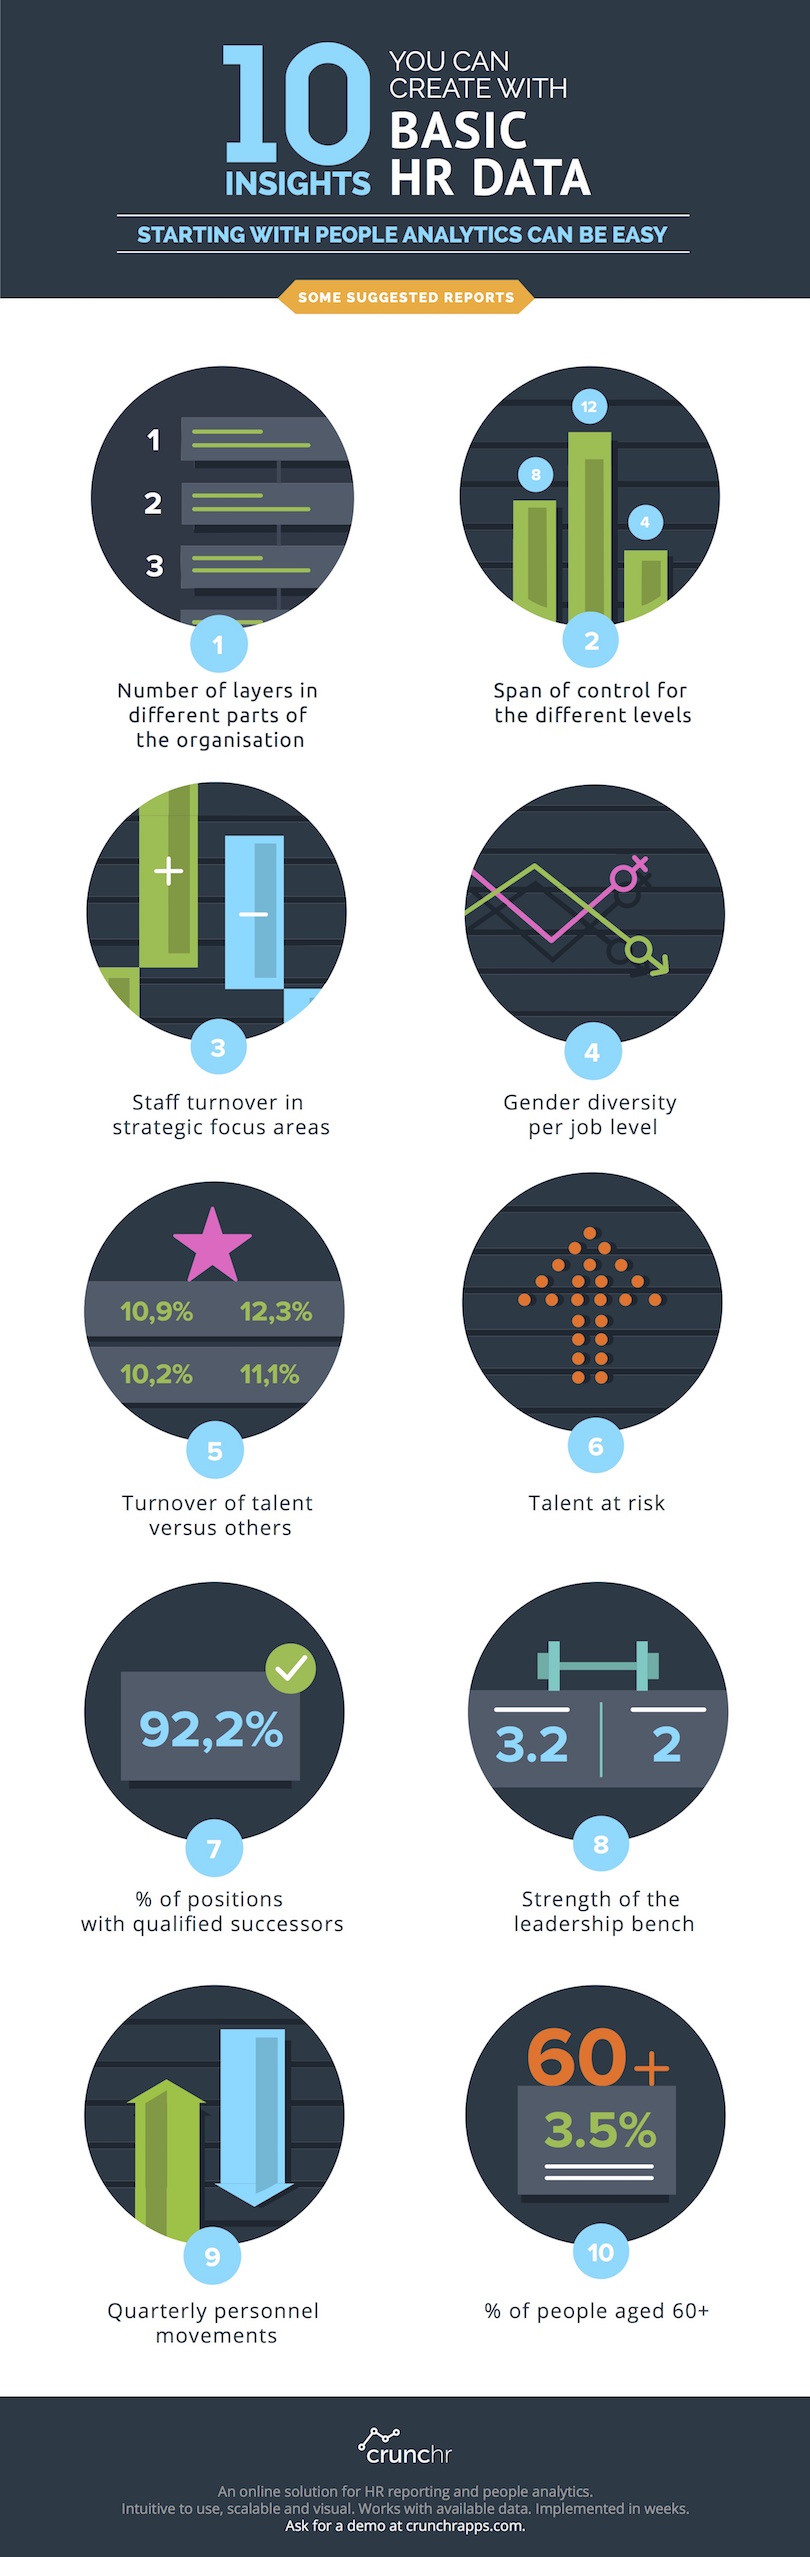 Crunchr Infographic 2 - 10 Insights you can create with Basic HR Data